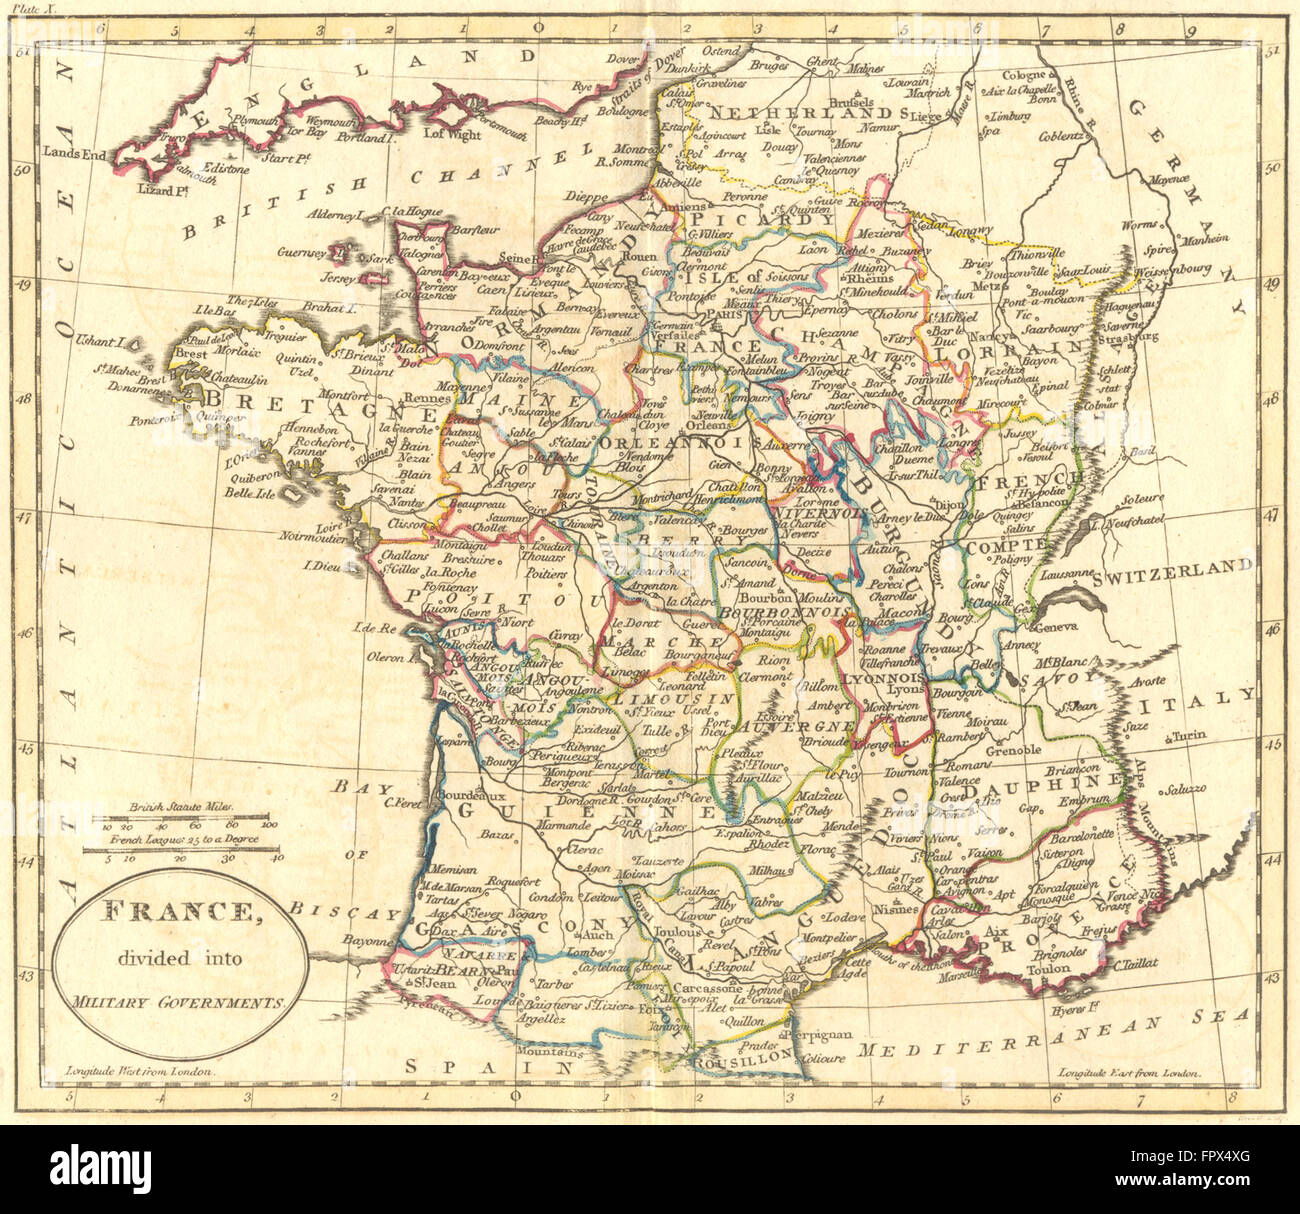 Map Of France 1800.France Military Governments Guthrie 1800 Antique Map Stock Photo